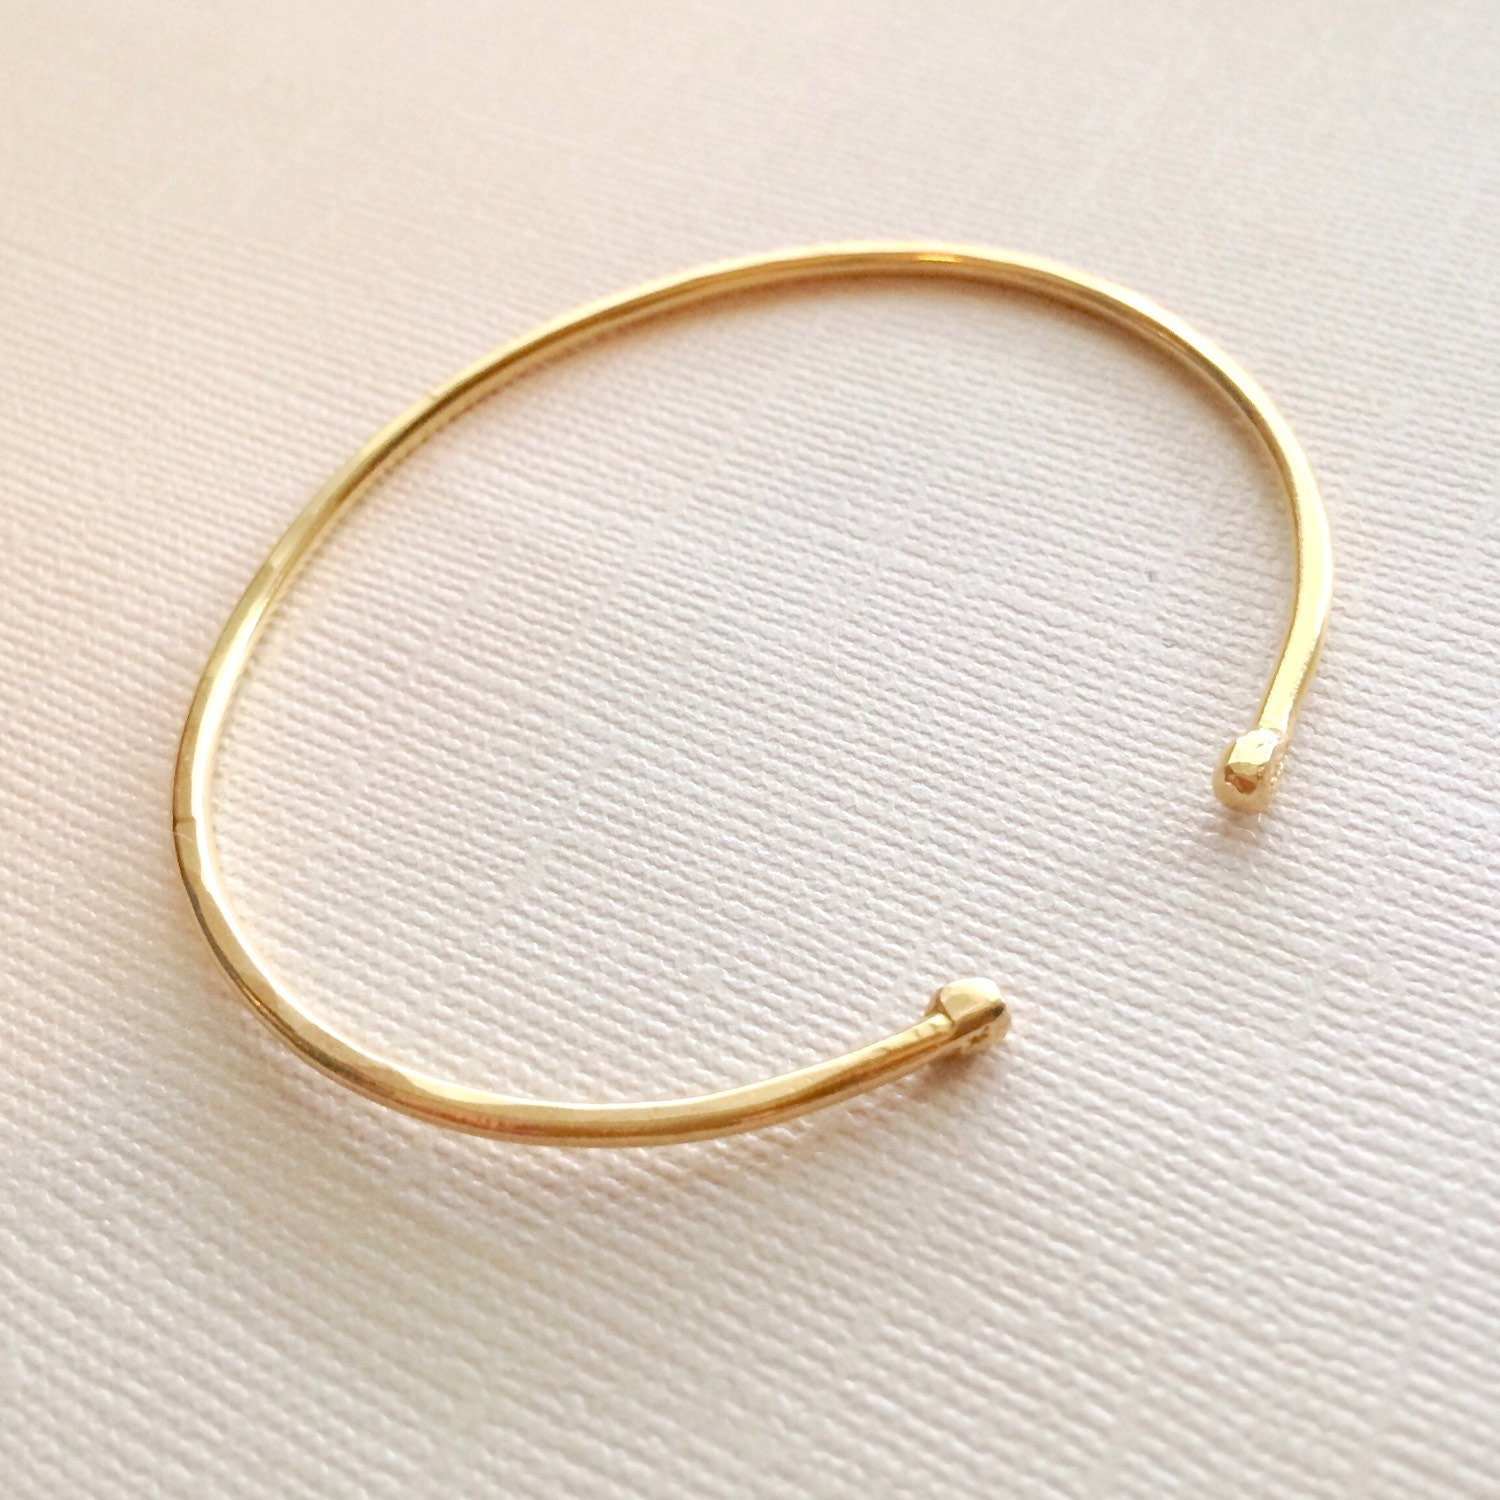 Ball End Stacking Cuff Simple Hand Forged Brass Cuff